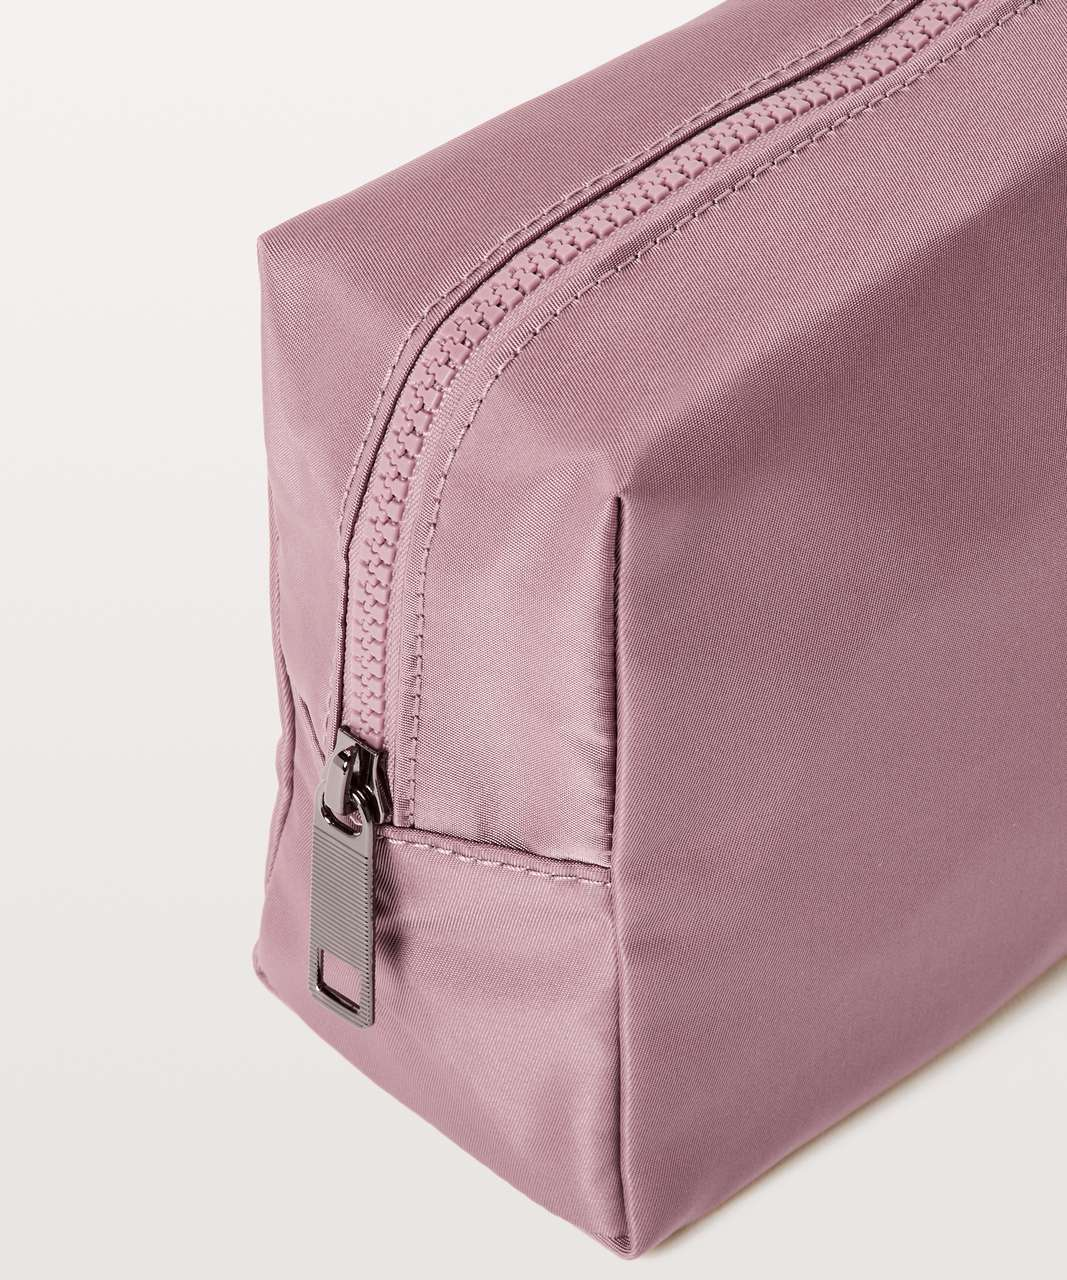 Lululemon All Your Small Things Pouch *4L - Red Dust